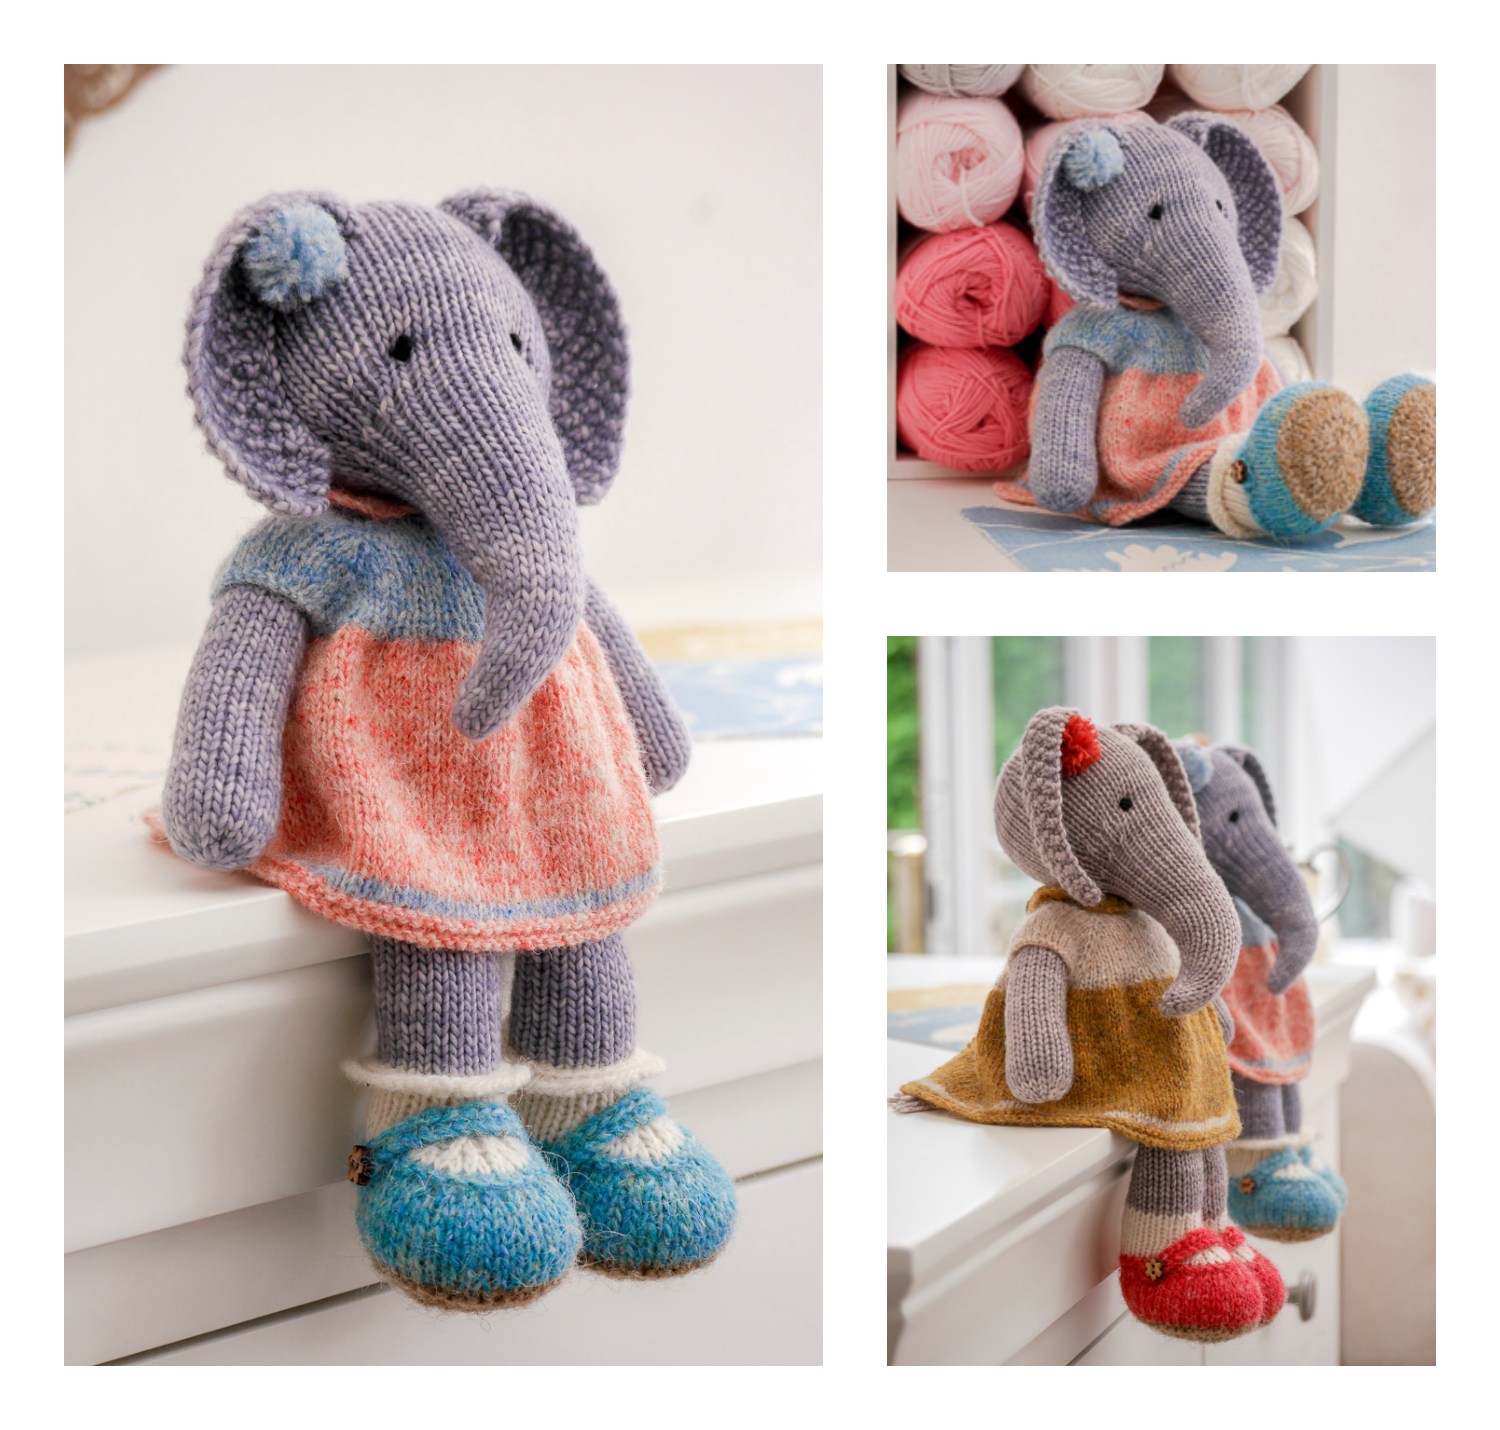 Knitting Patterns For Toys Uk Mary Janes Tearoom Tearoom Shop